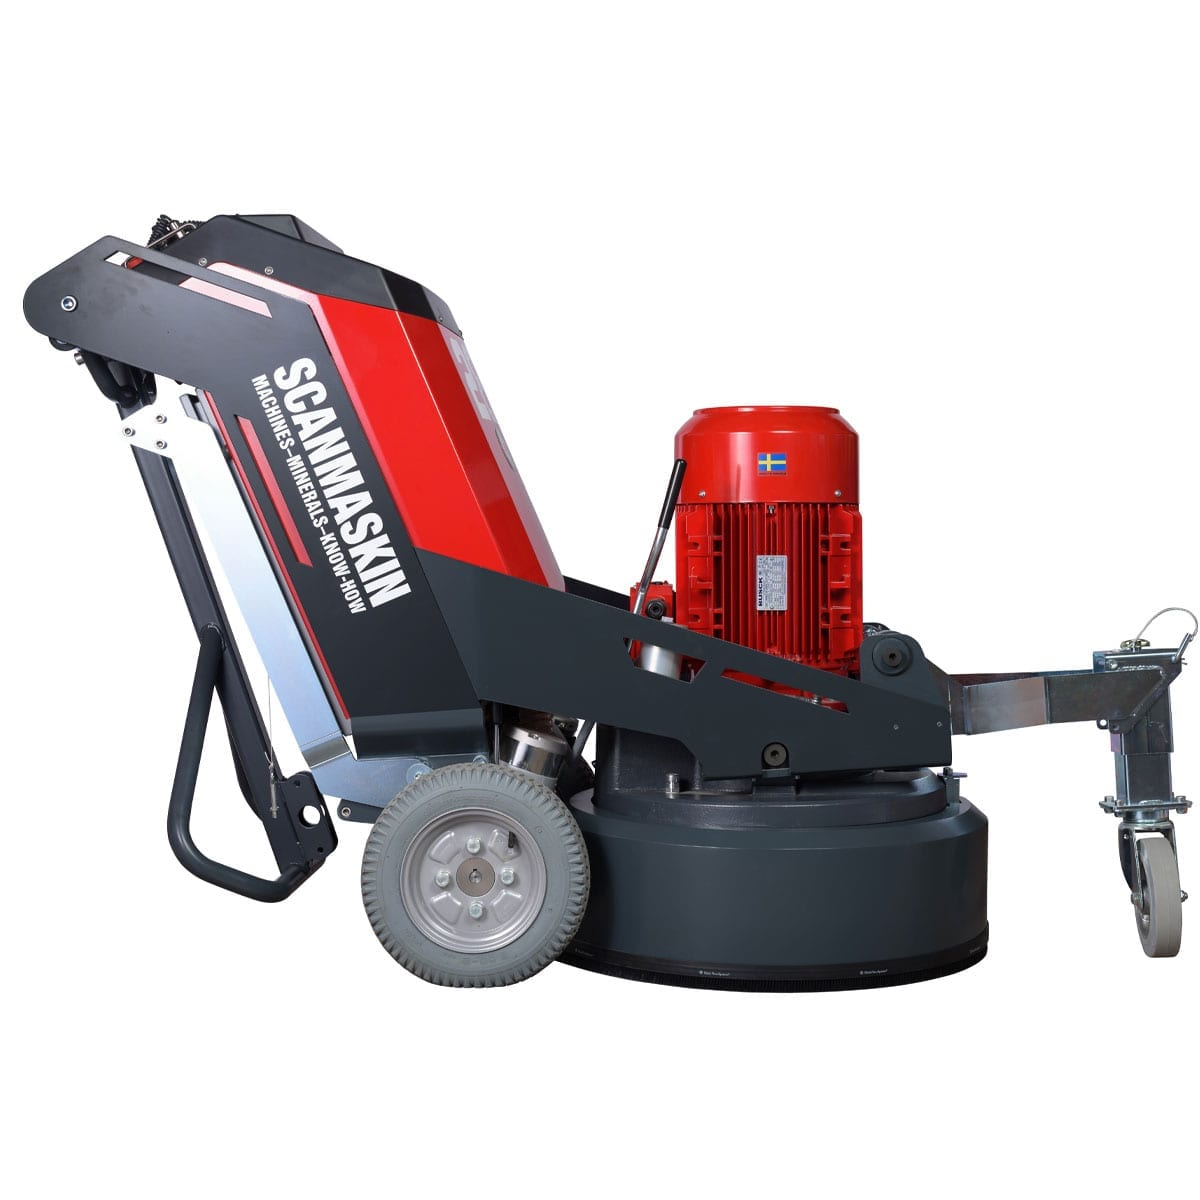 Right Scanmaskin 28 World Series Concrete Grinder 230 and 400 Volt Turning Point Supply